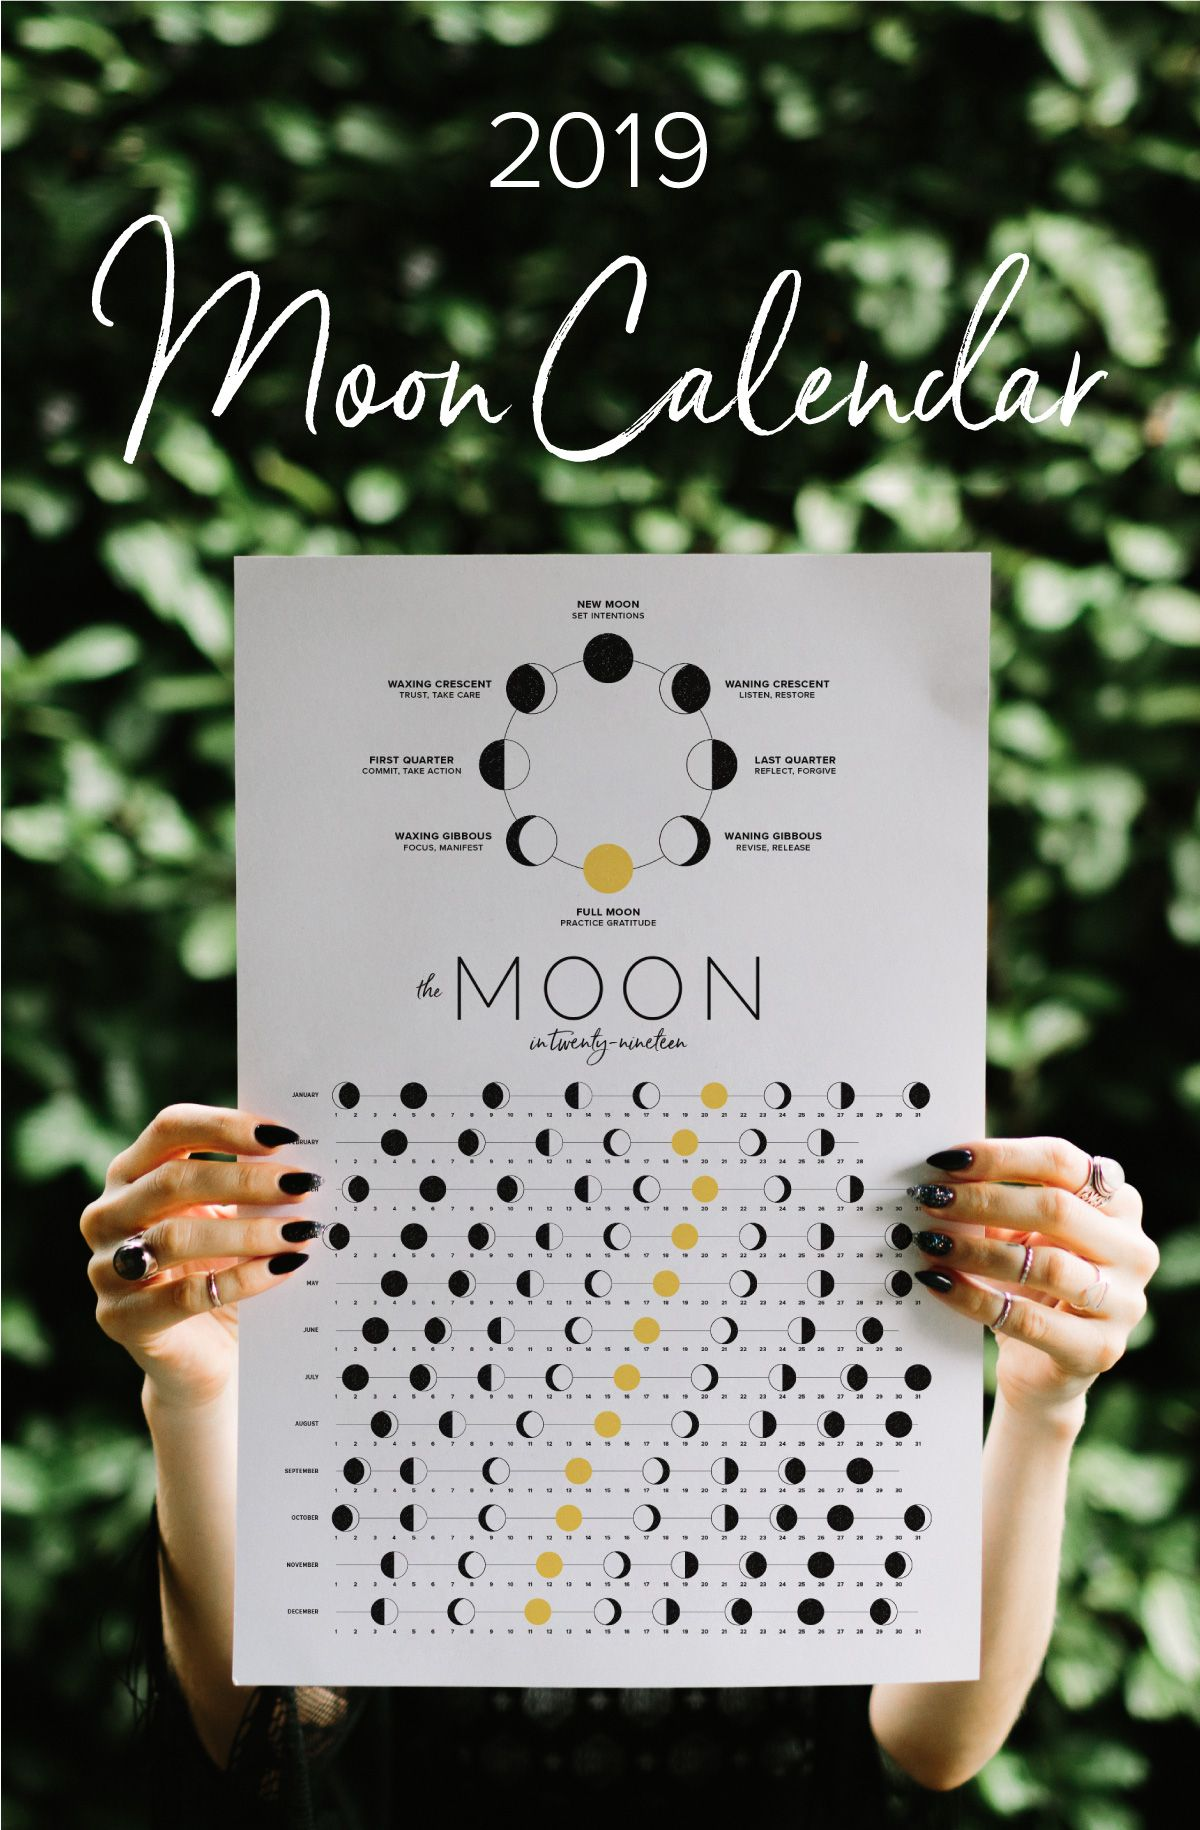 A 2019 Moon Calendar Featuring Intention Setting Cues Specific To